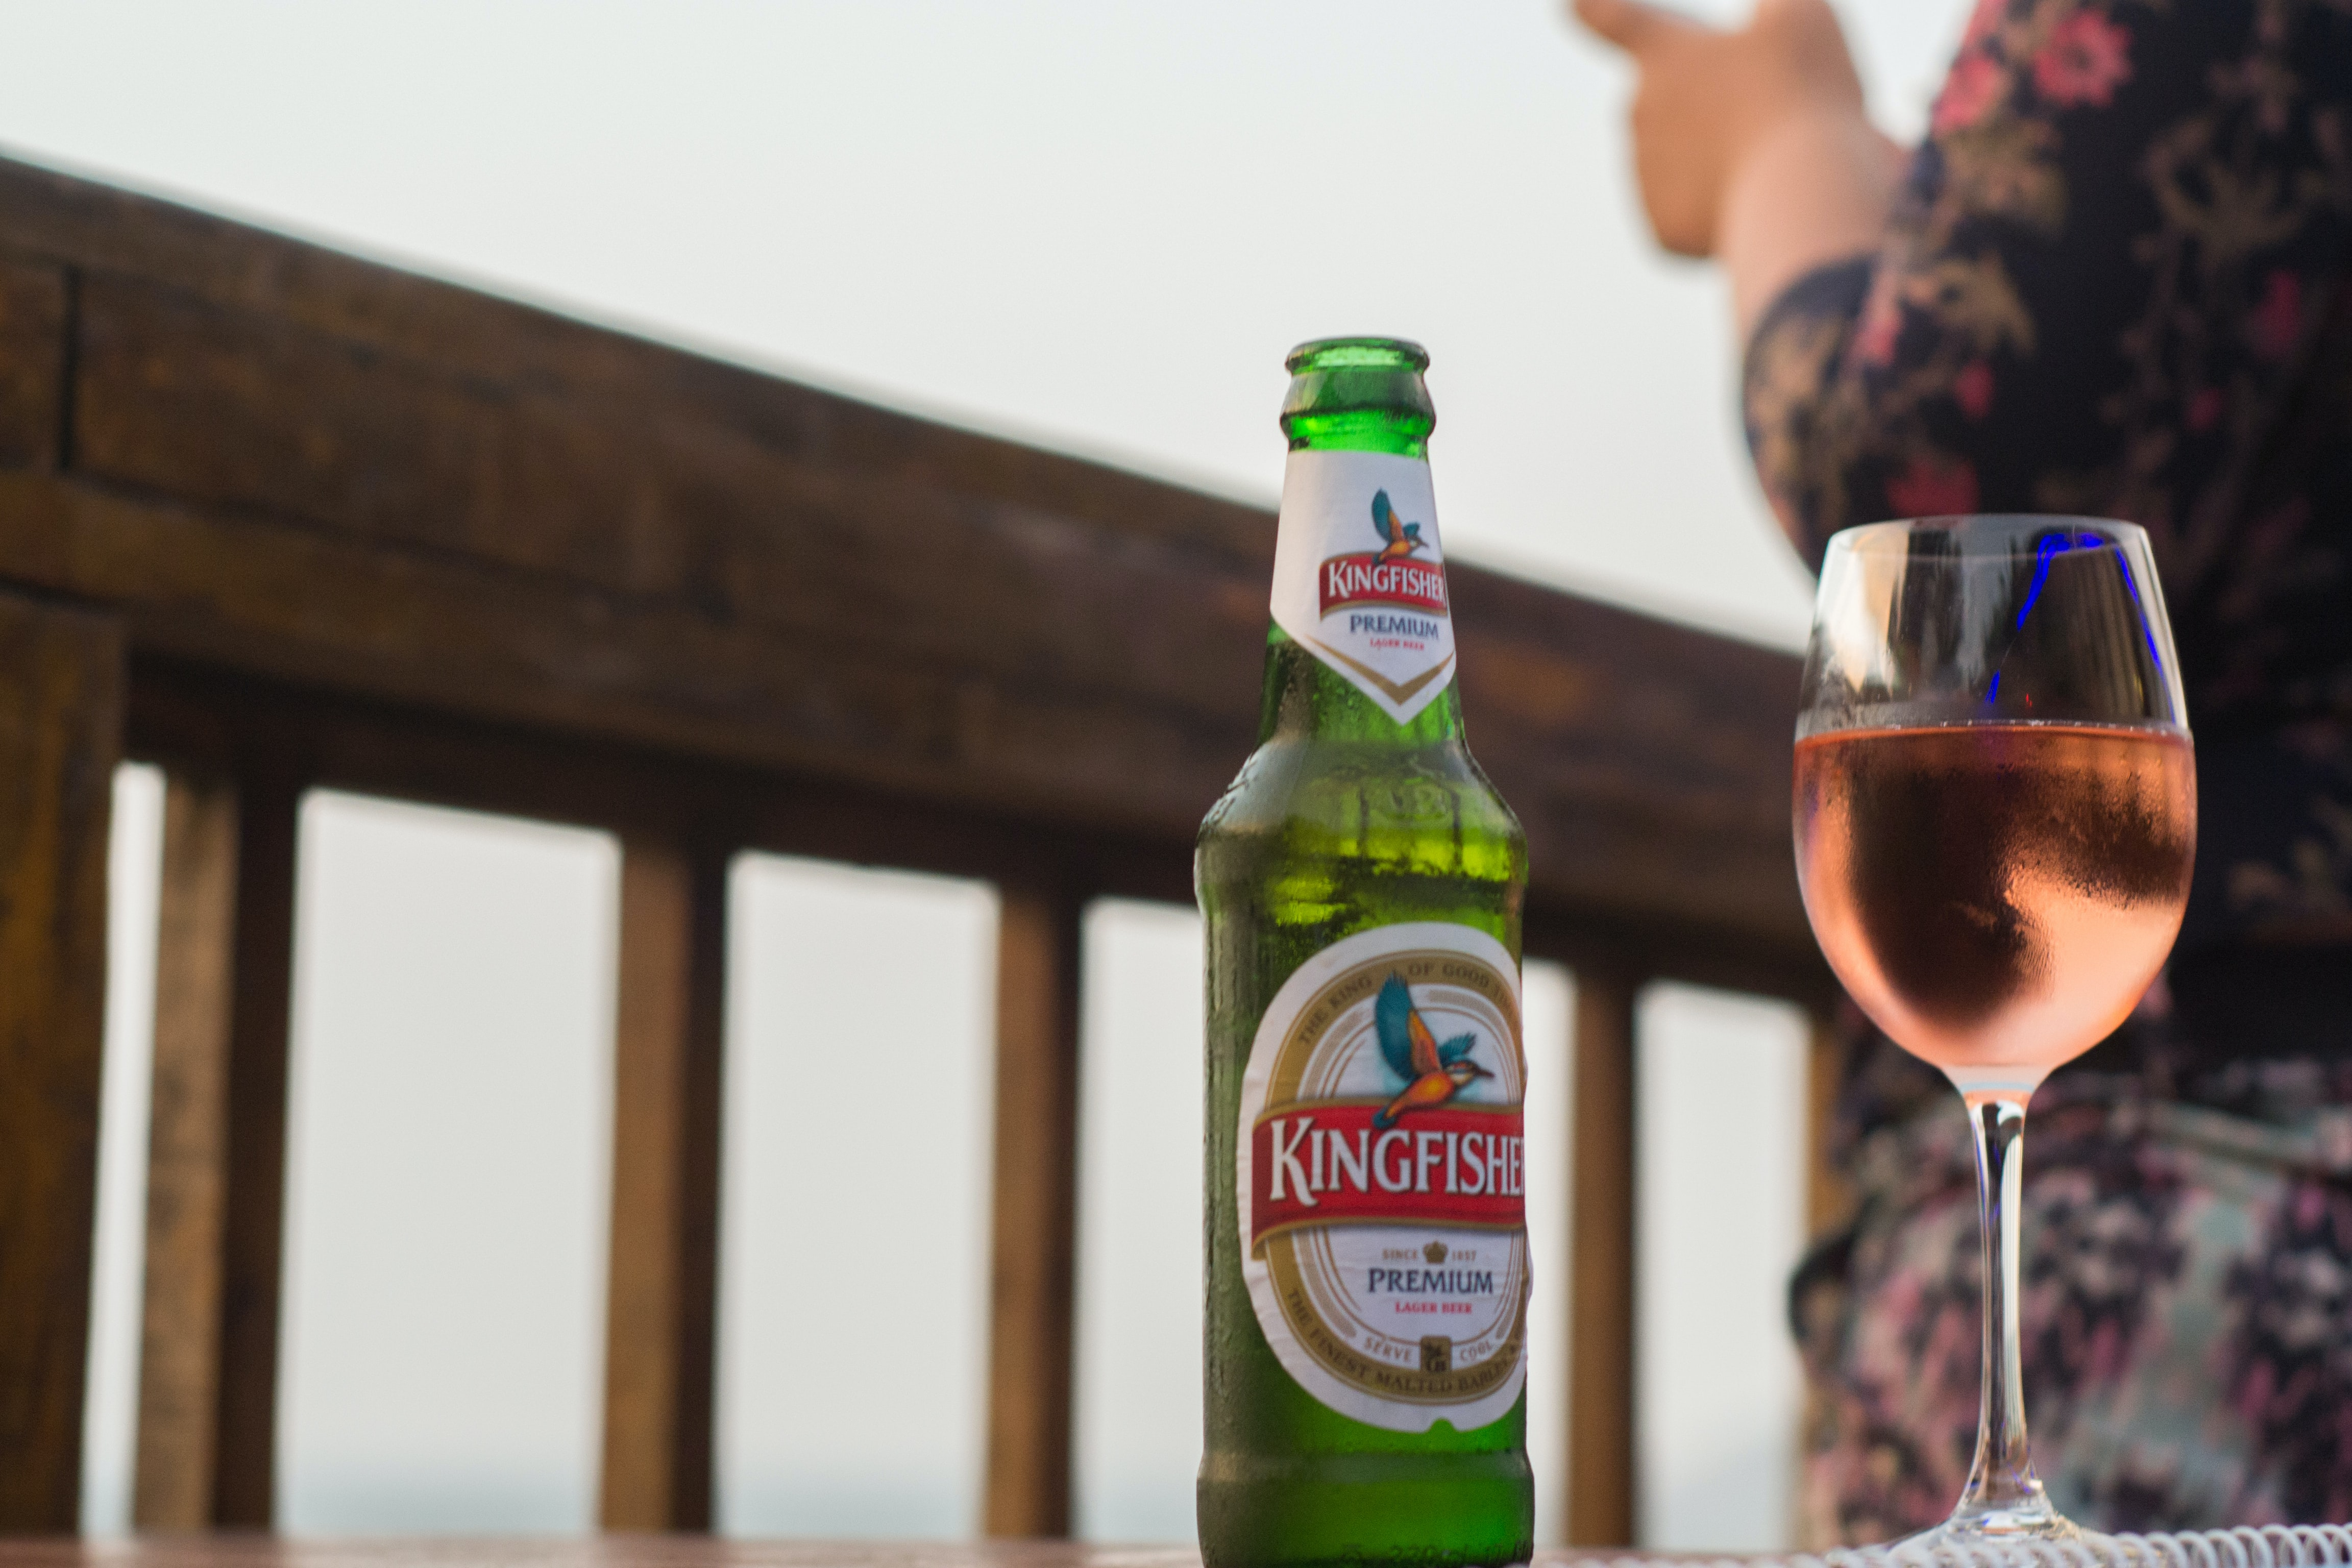 Kingfisher bottle and wine glass